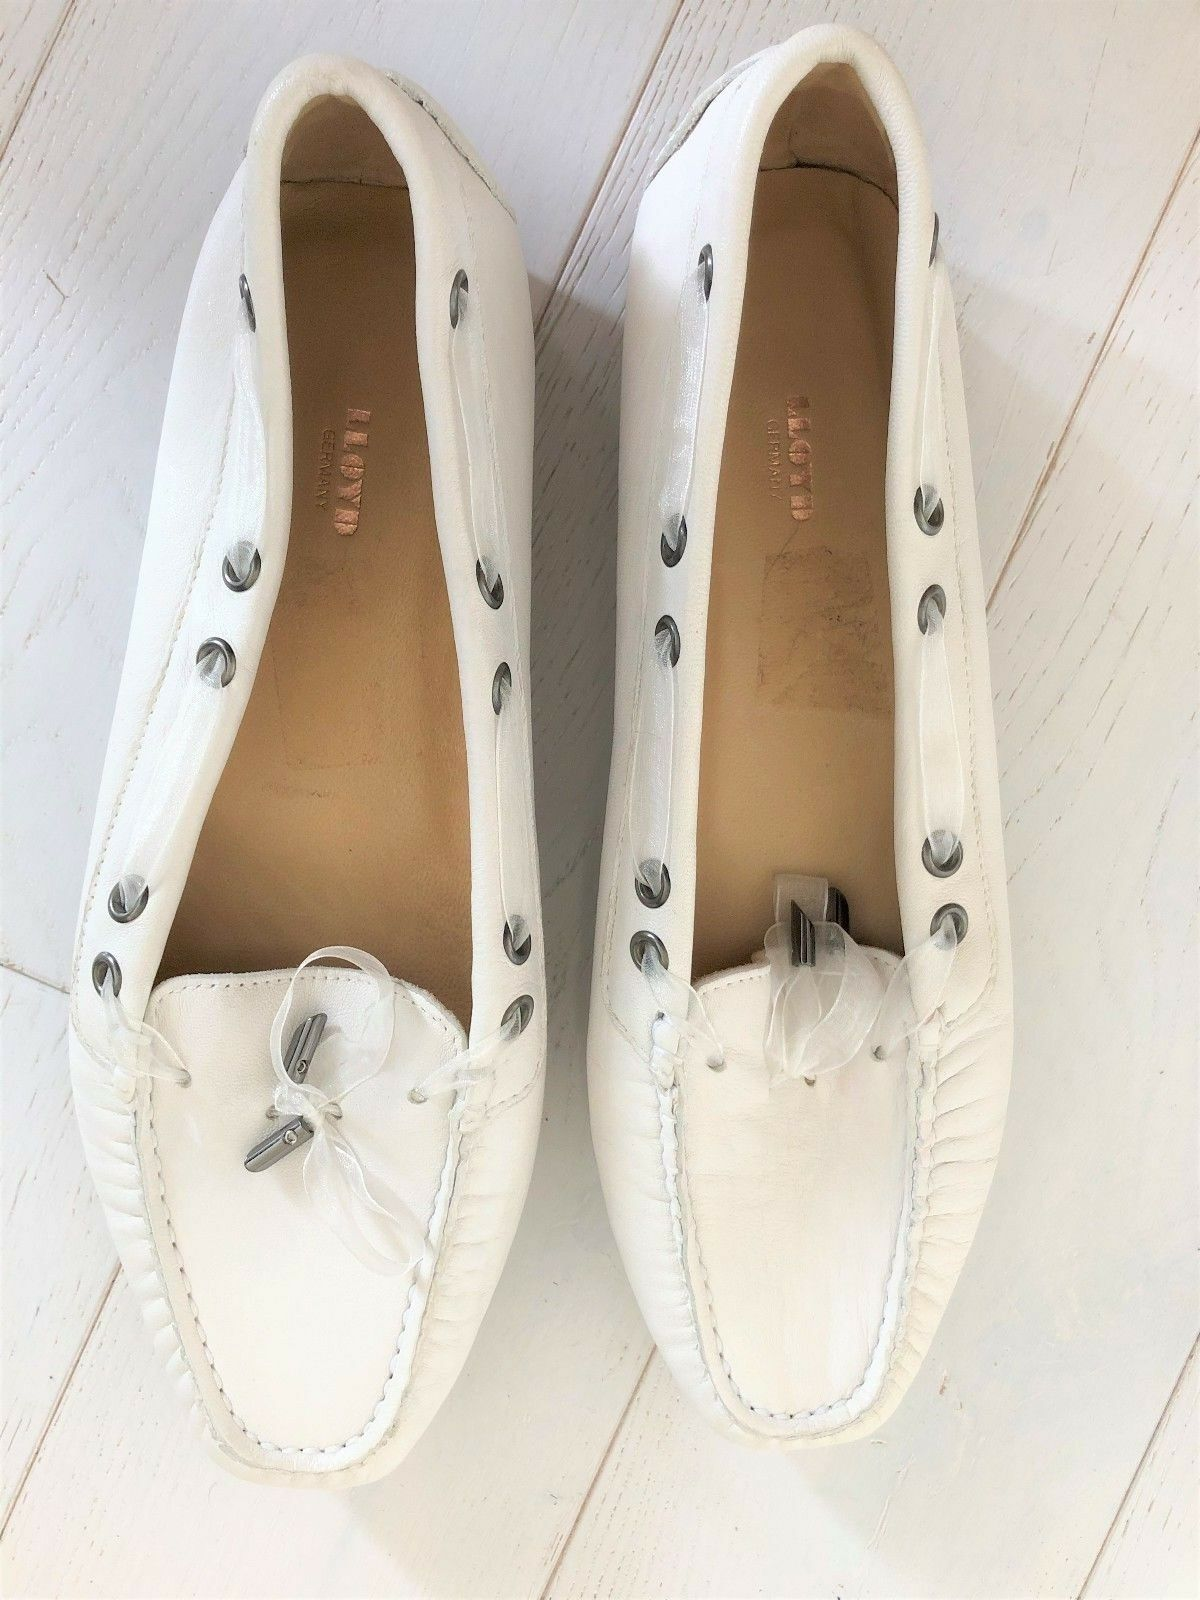 LLOYD GERMANY ladies blanc loafer moccasin deck chaussures chaussures UK 7.5 40.5